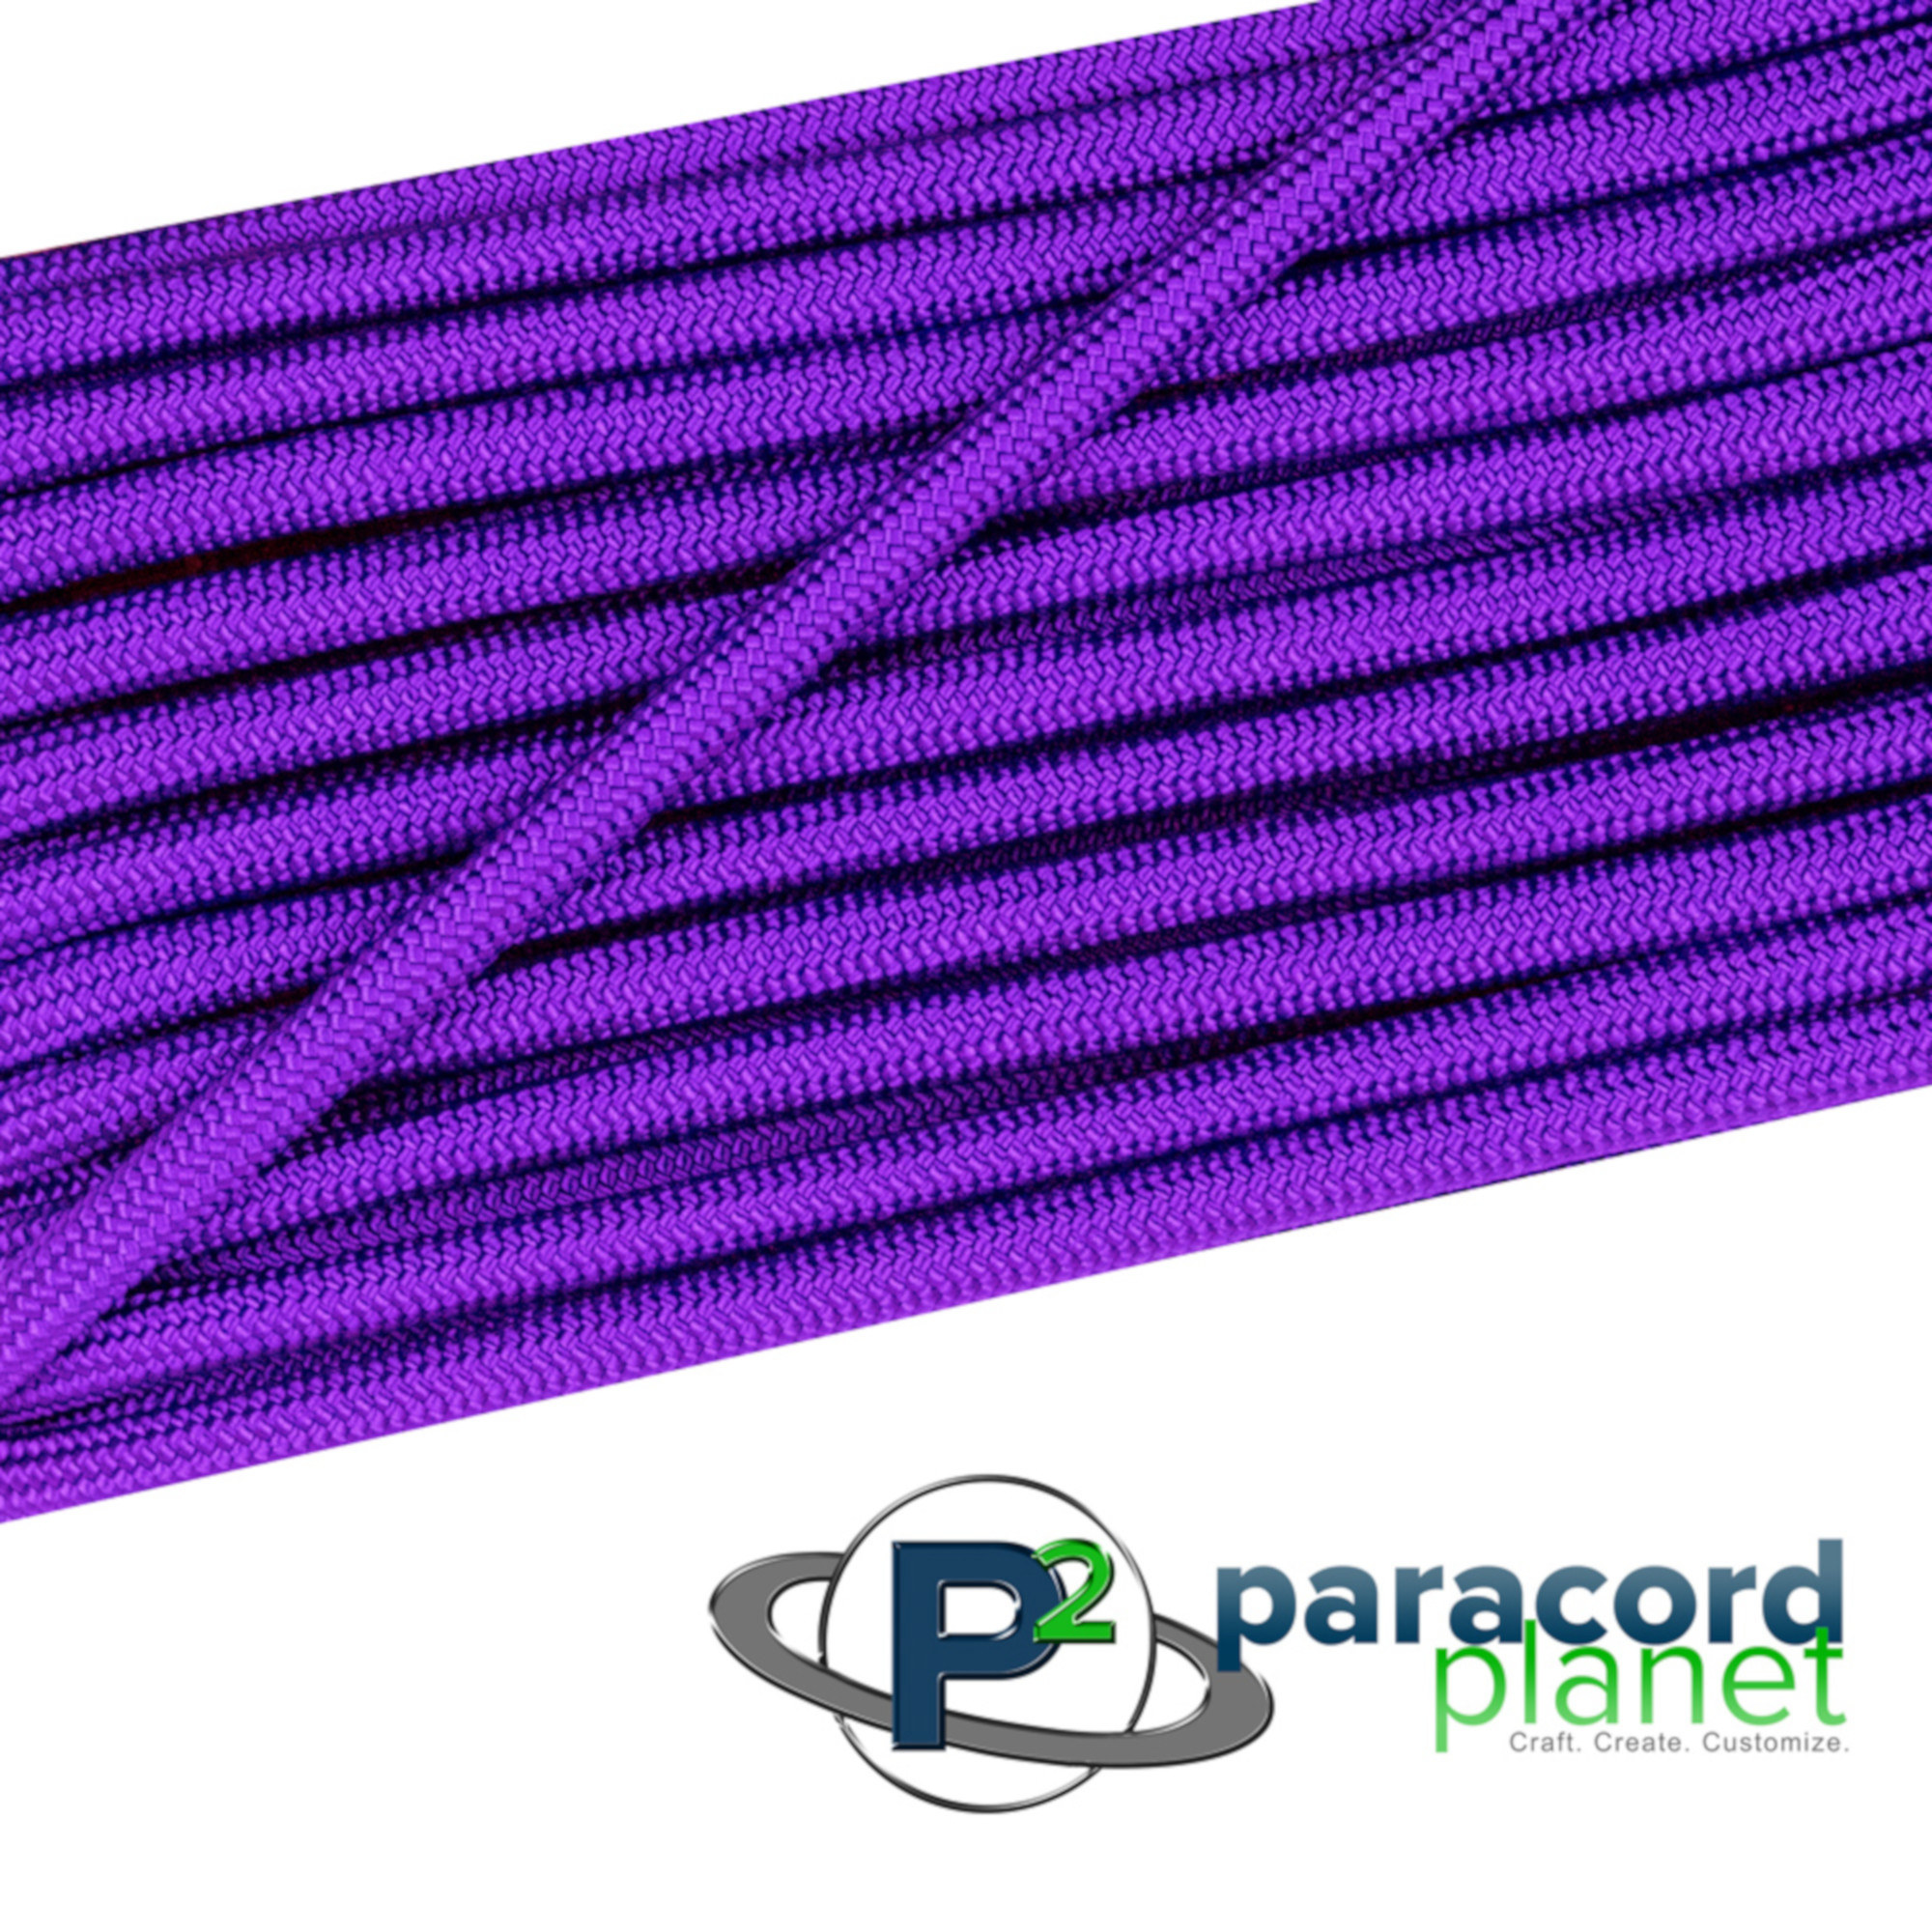 Paracord Planet's 1000lb Tensile Strength Para-Max Paracord Various Colors and Sizes